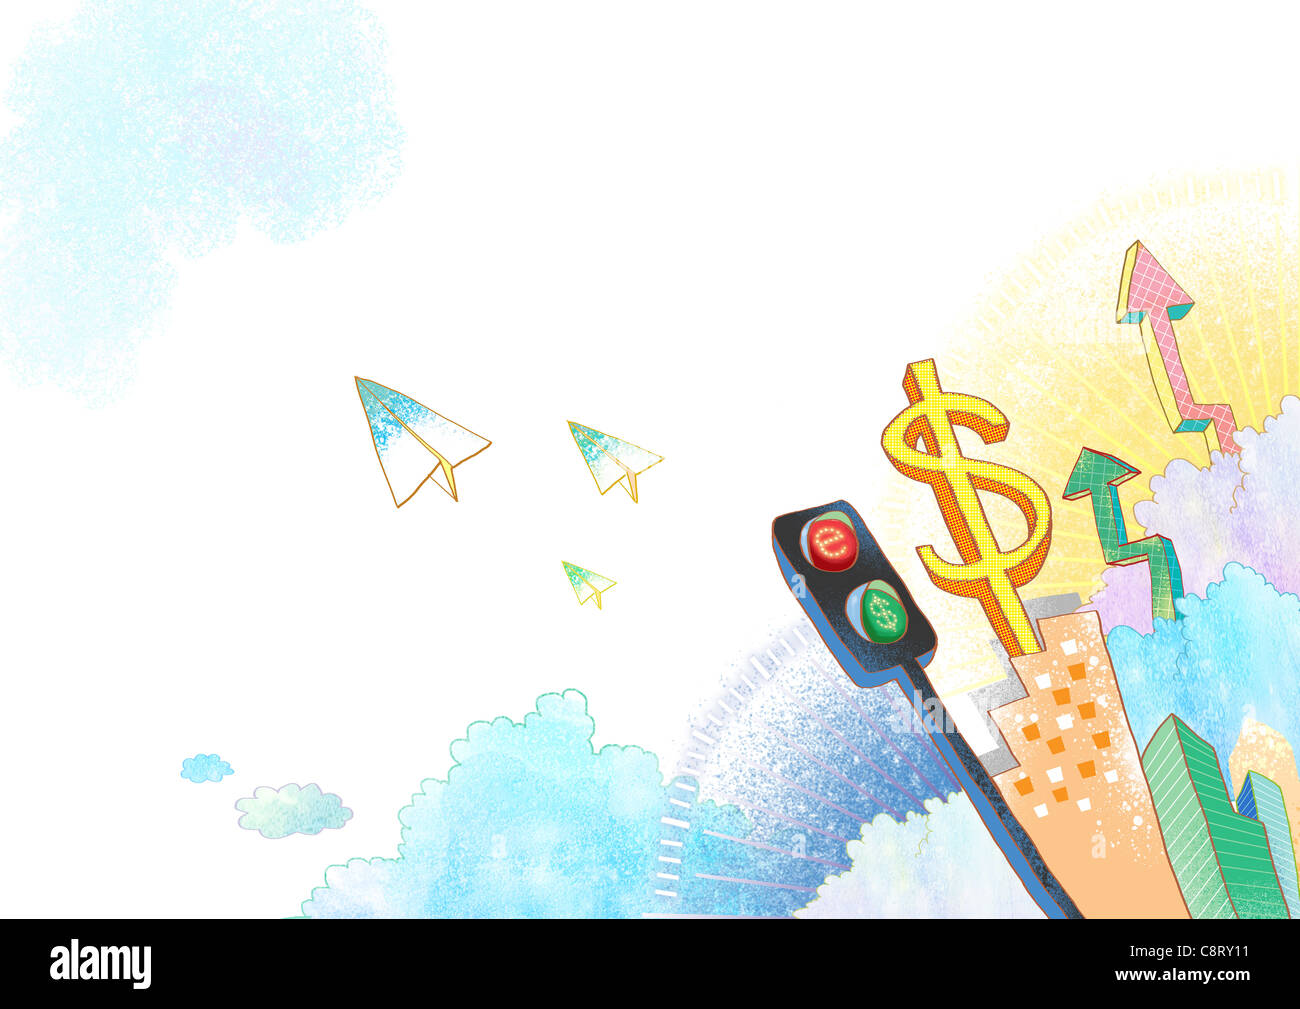 Illustration of dollar sign and traffic signal - Stock Image